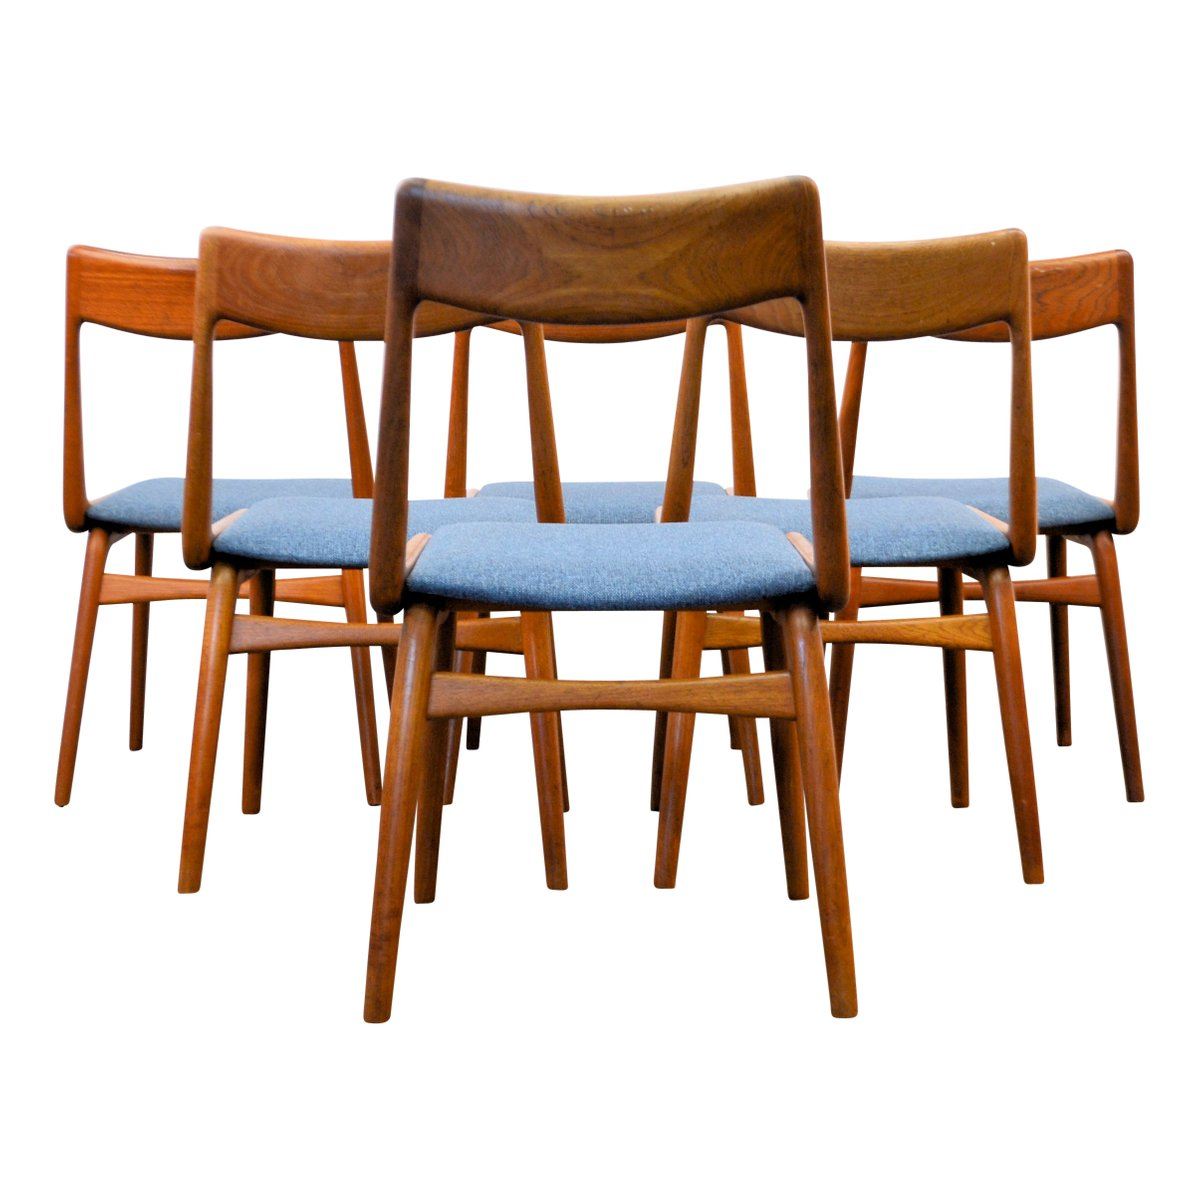 Mid Century Boomerang Dining Chairs by Alfred Christensen  : mid century boomerang dining chairs by alfred christensen for slagelse mobelvaerk set of 6 5 from www.pamono.com size 1200 x 1200 jpeg 89kB